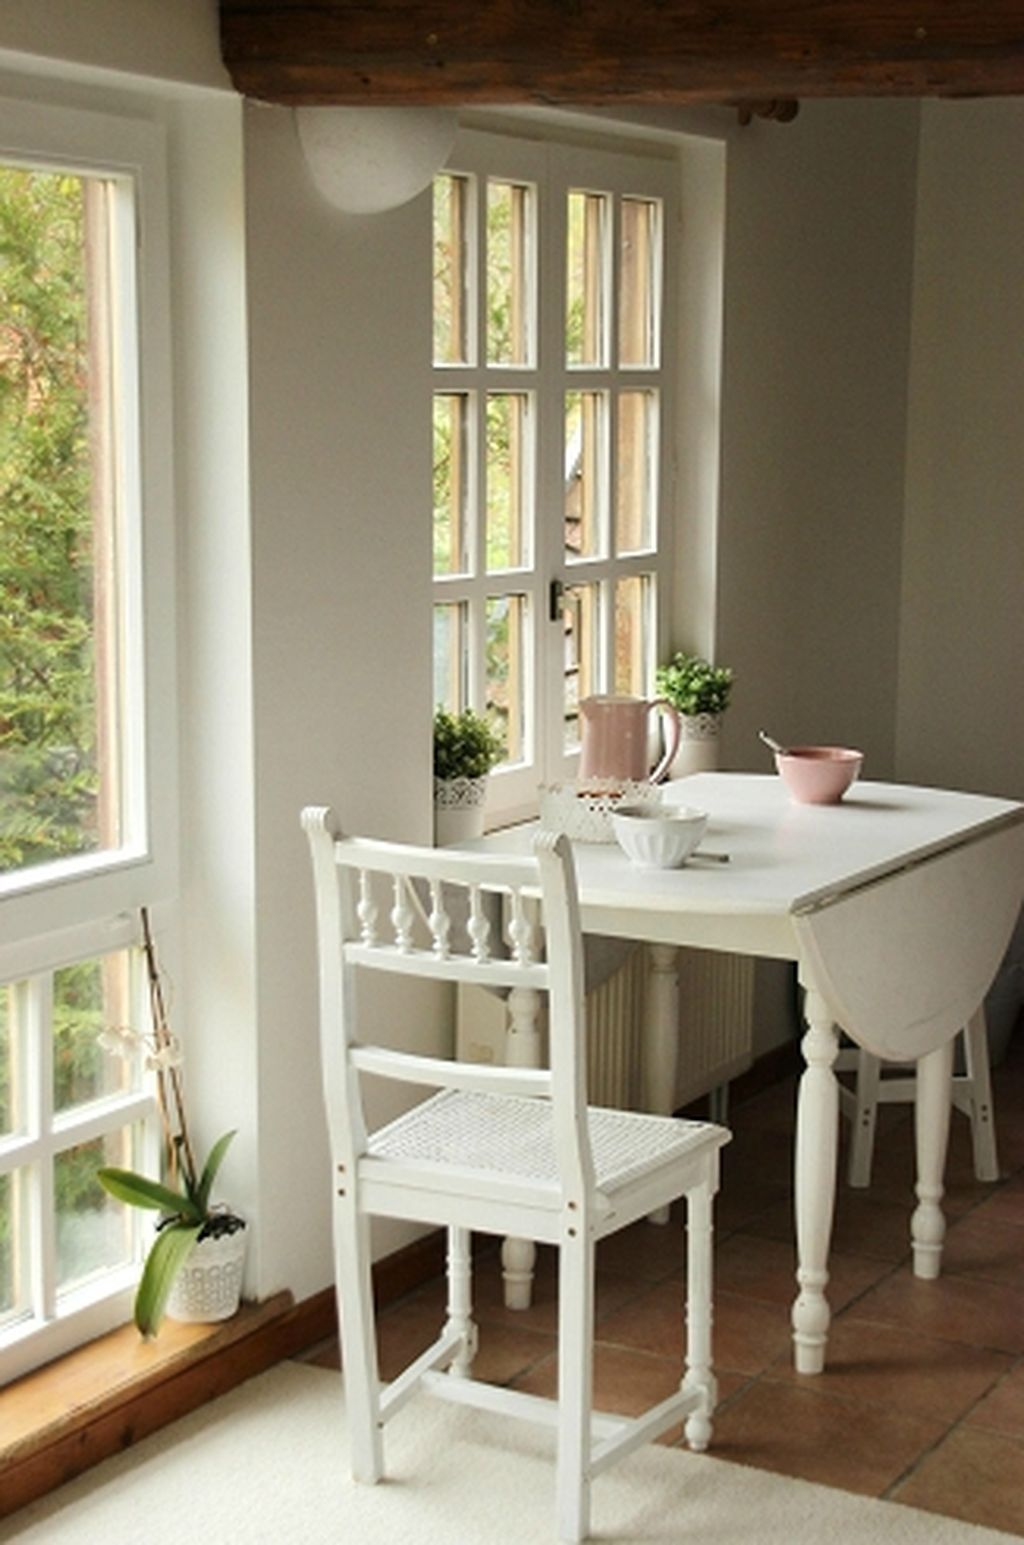 Vintage Drop Leaf Table Ideas 40   Small kitchen tables ...